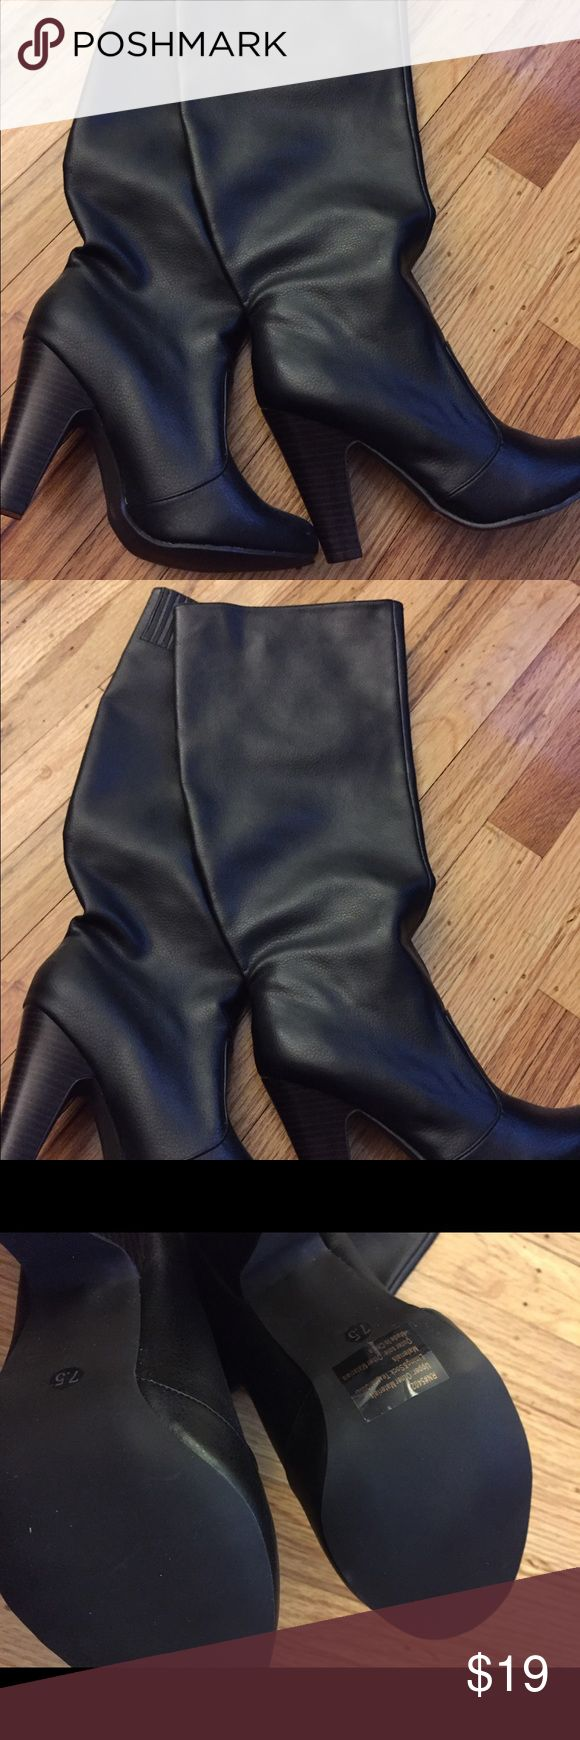 Brand New Black Knee High Boots Brand New Black Knee High Boots. Size 7.5 but I think they run small, maybe more like a 6.5 or 7. Very expensive looking! Old Navy Shoes Over the Knee Boots